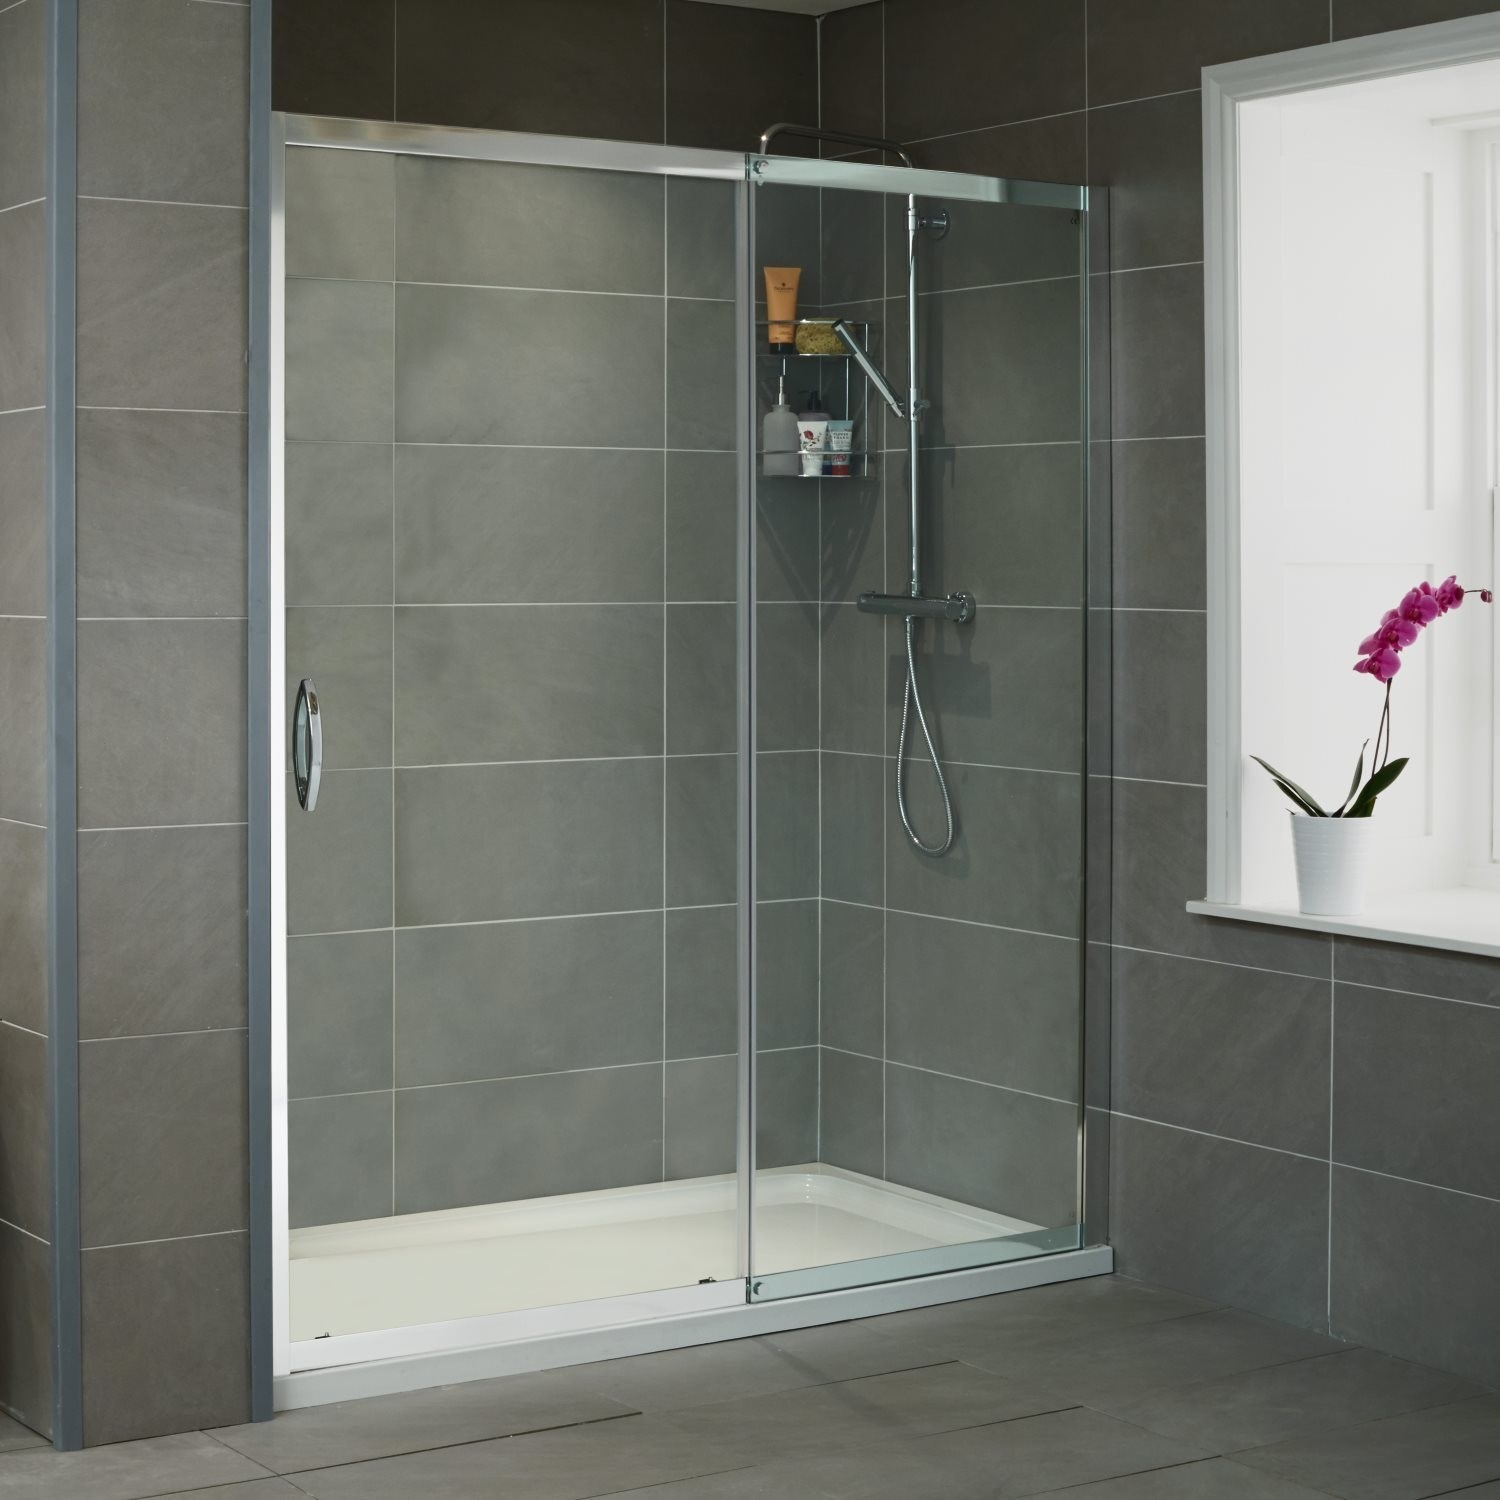 Sliding Shower Door 1100mm 8mm Glass Aquafloe Iris Range Better Bathrooms